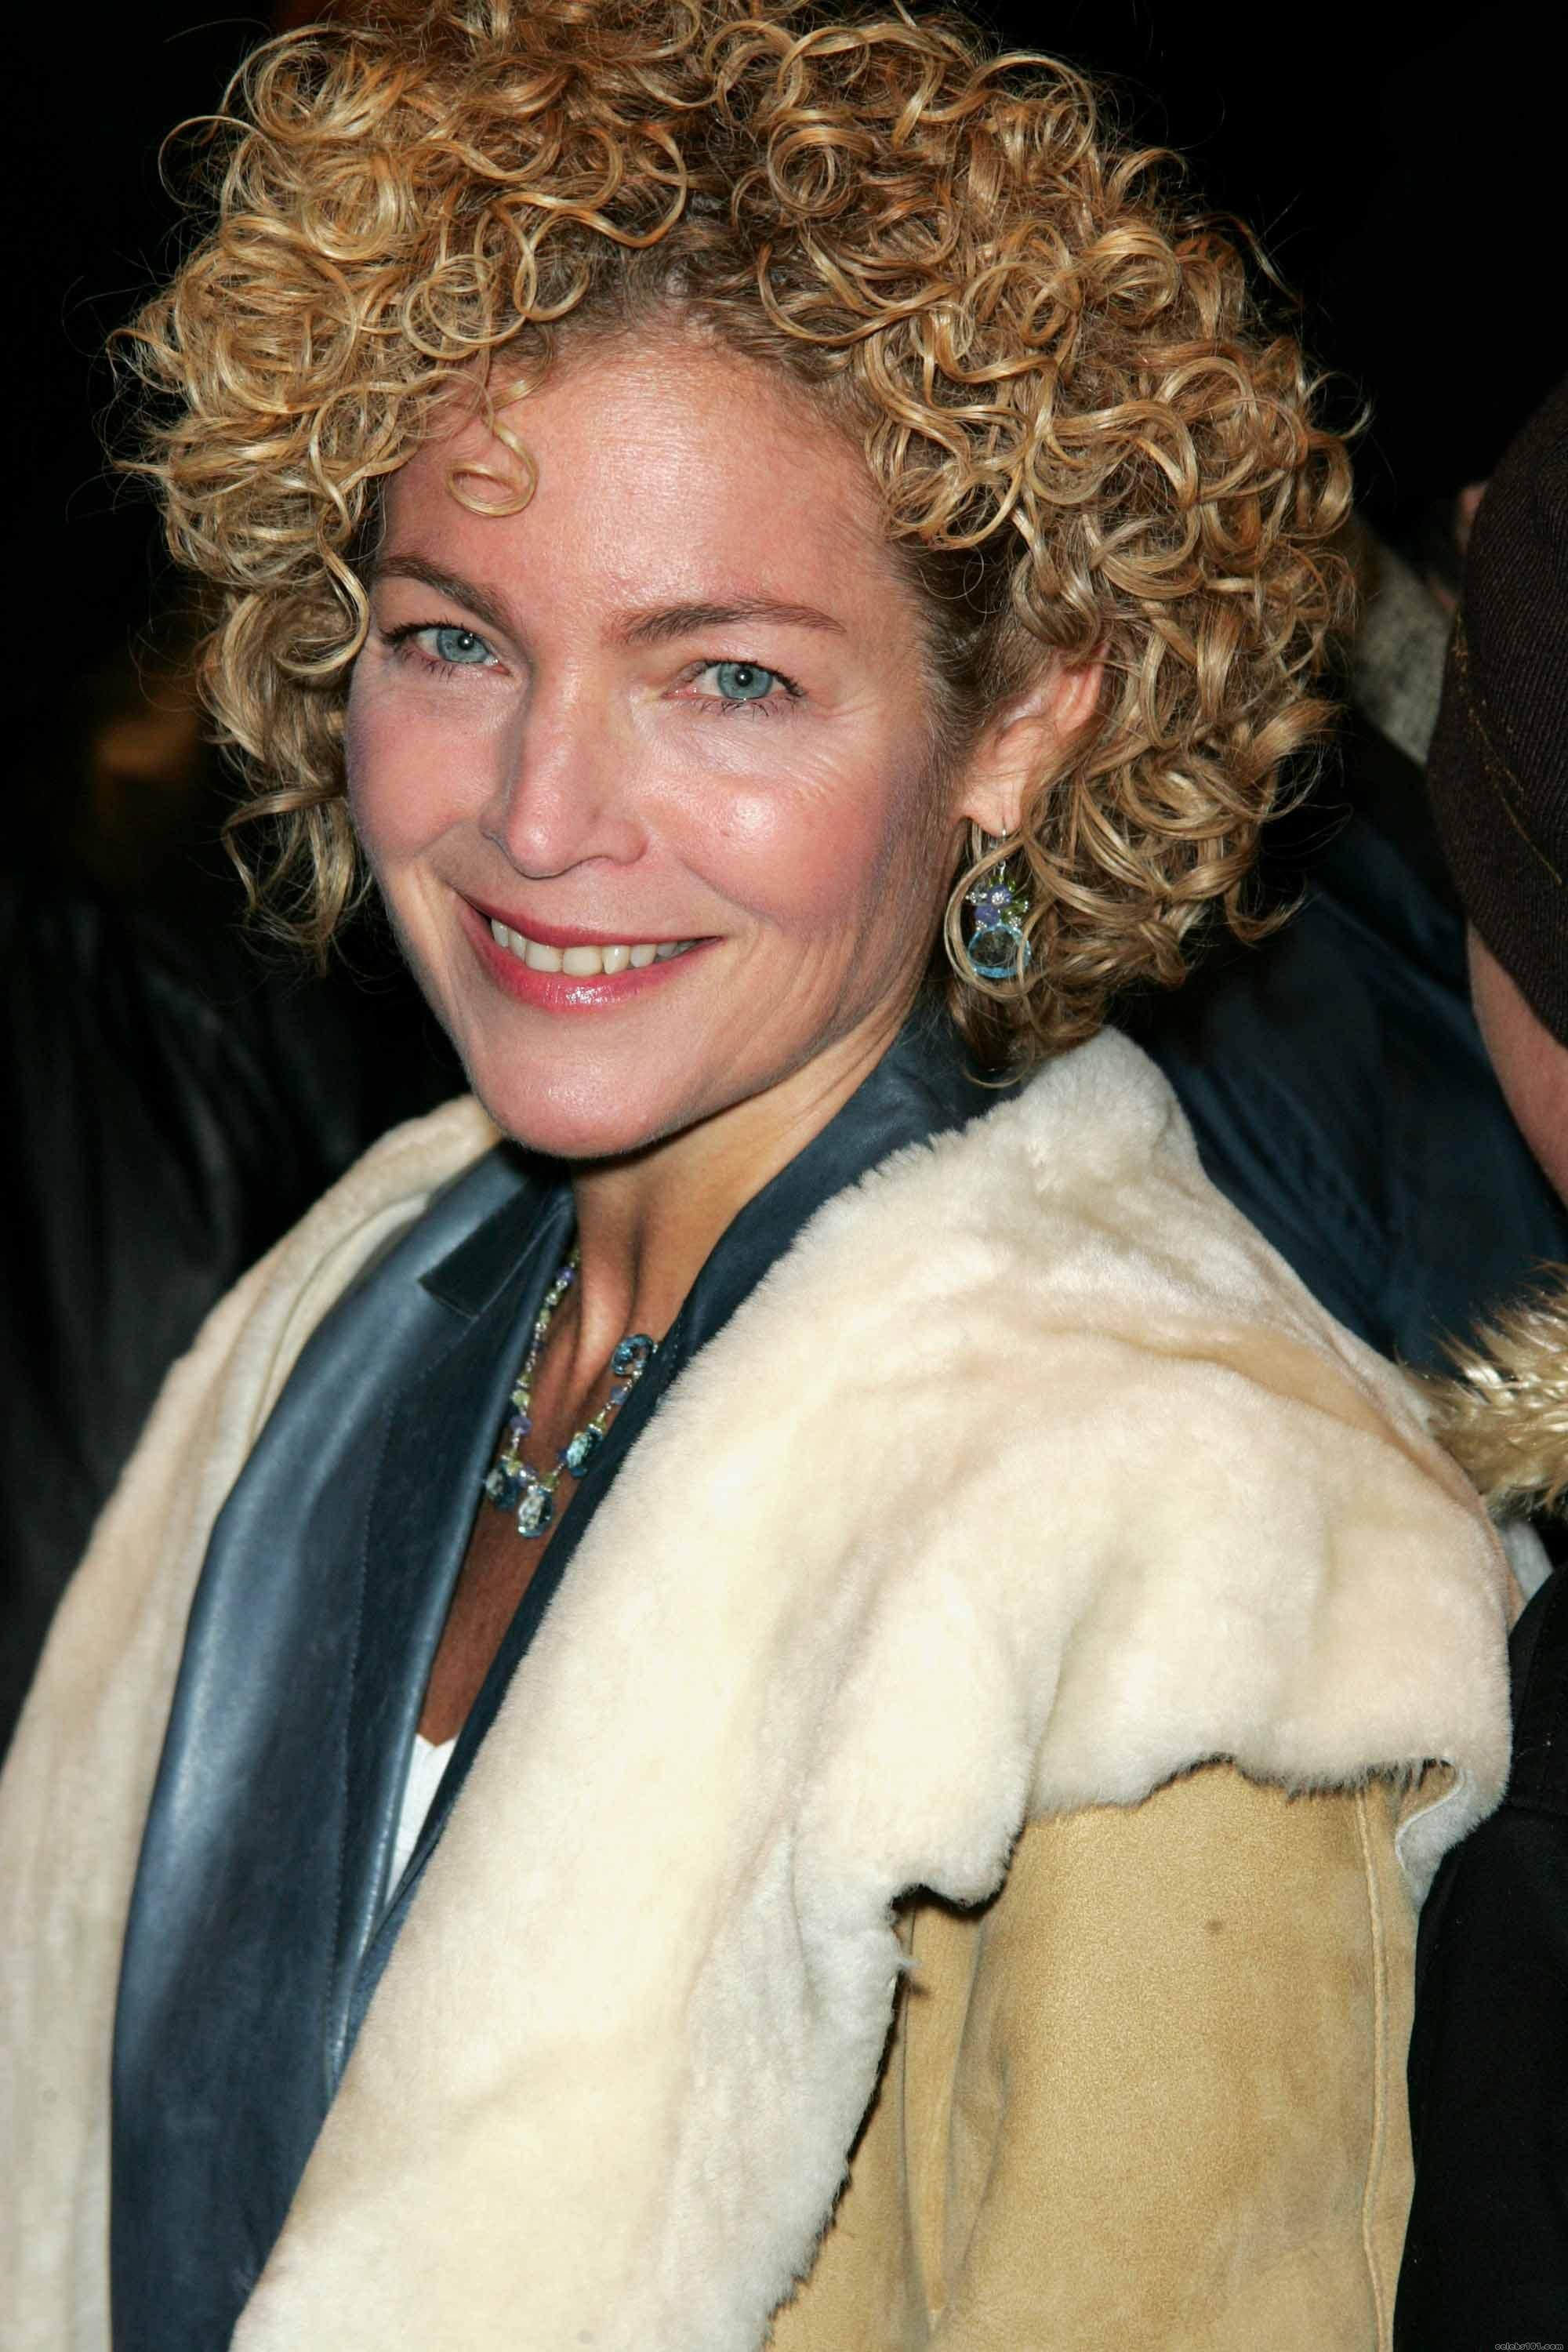 amy irving ageamy irving songs, amy irving wiki, amy irving why don't you do right lyrics, amy irving singer, amy irving carrie, amy irving singing, amy irving instagram, amy irving young, amy irving the competition, amy irving youtube, amy irving net worth, amy irving imdb, amy irving age, amy irving photos, amy irving husband